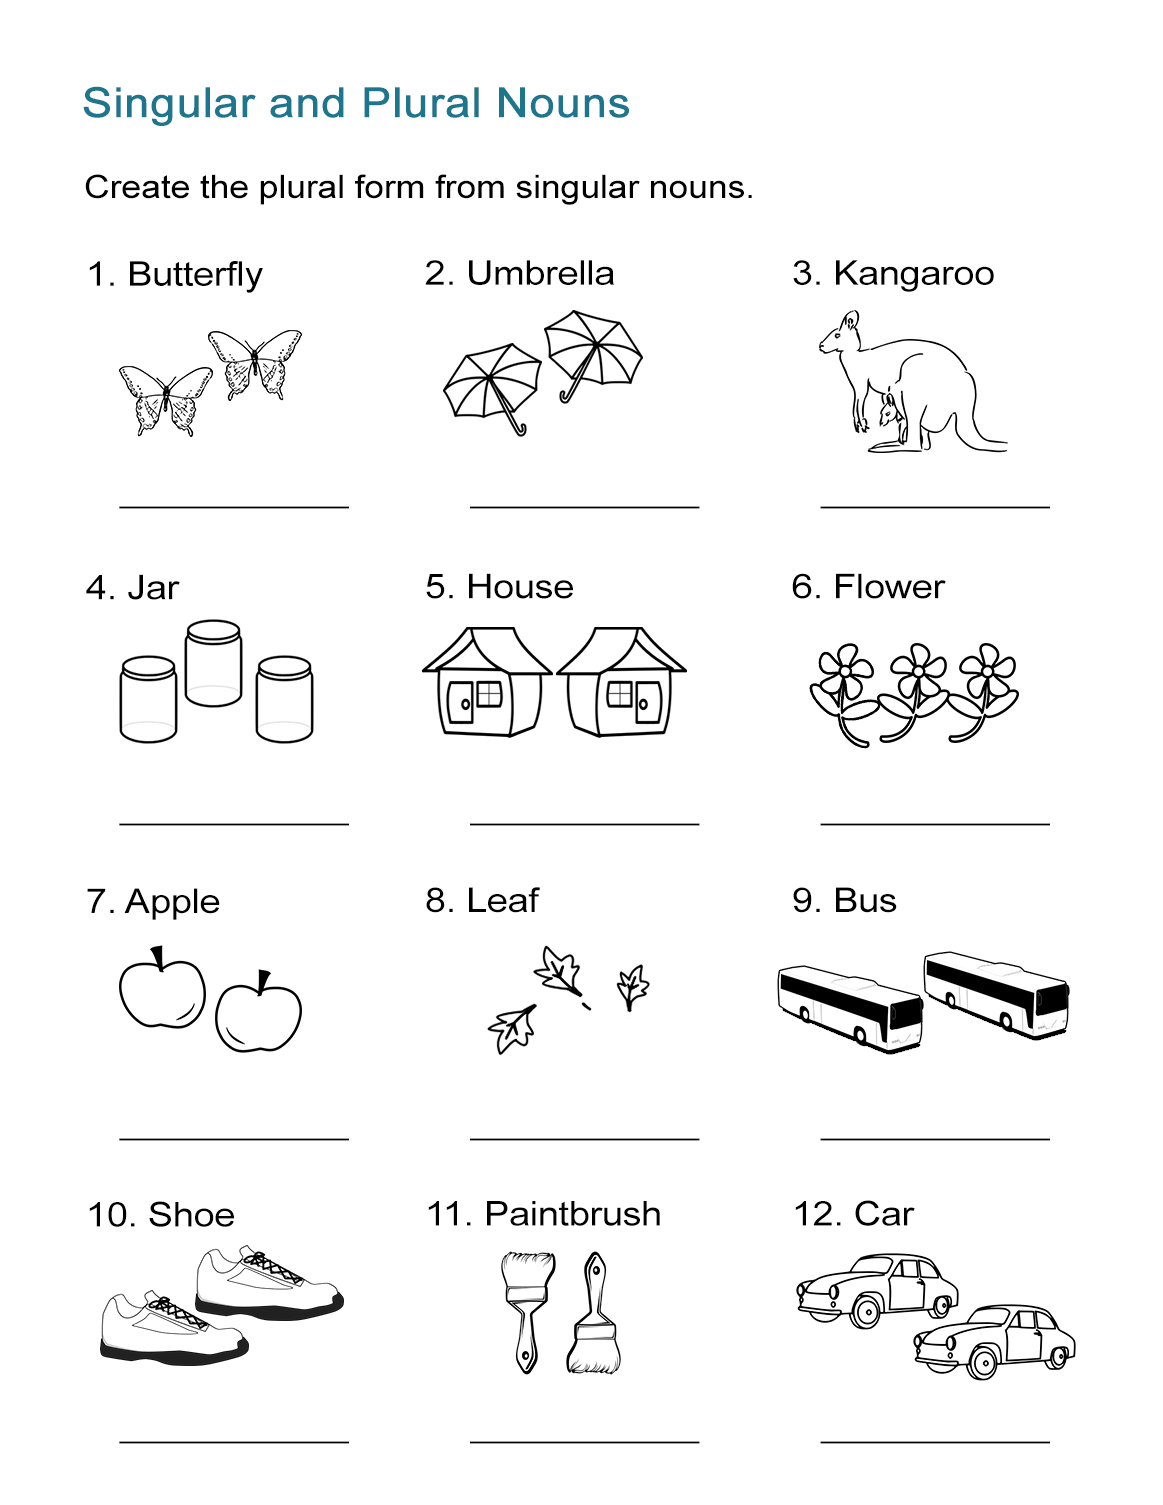 Singular and Plural Nouns Worksheet - All ESL